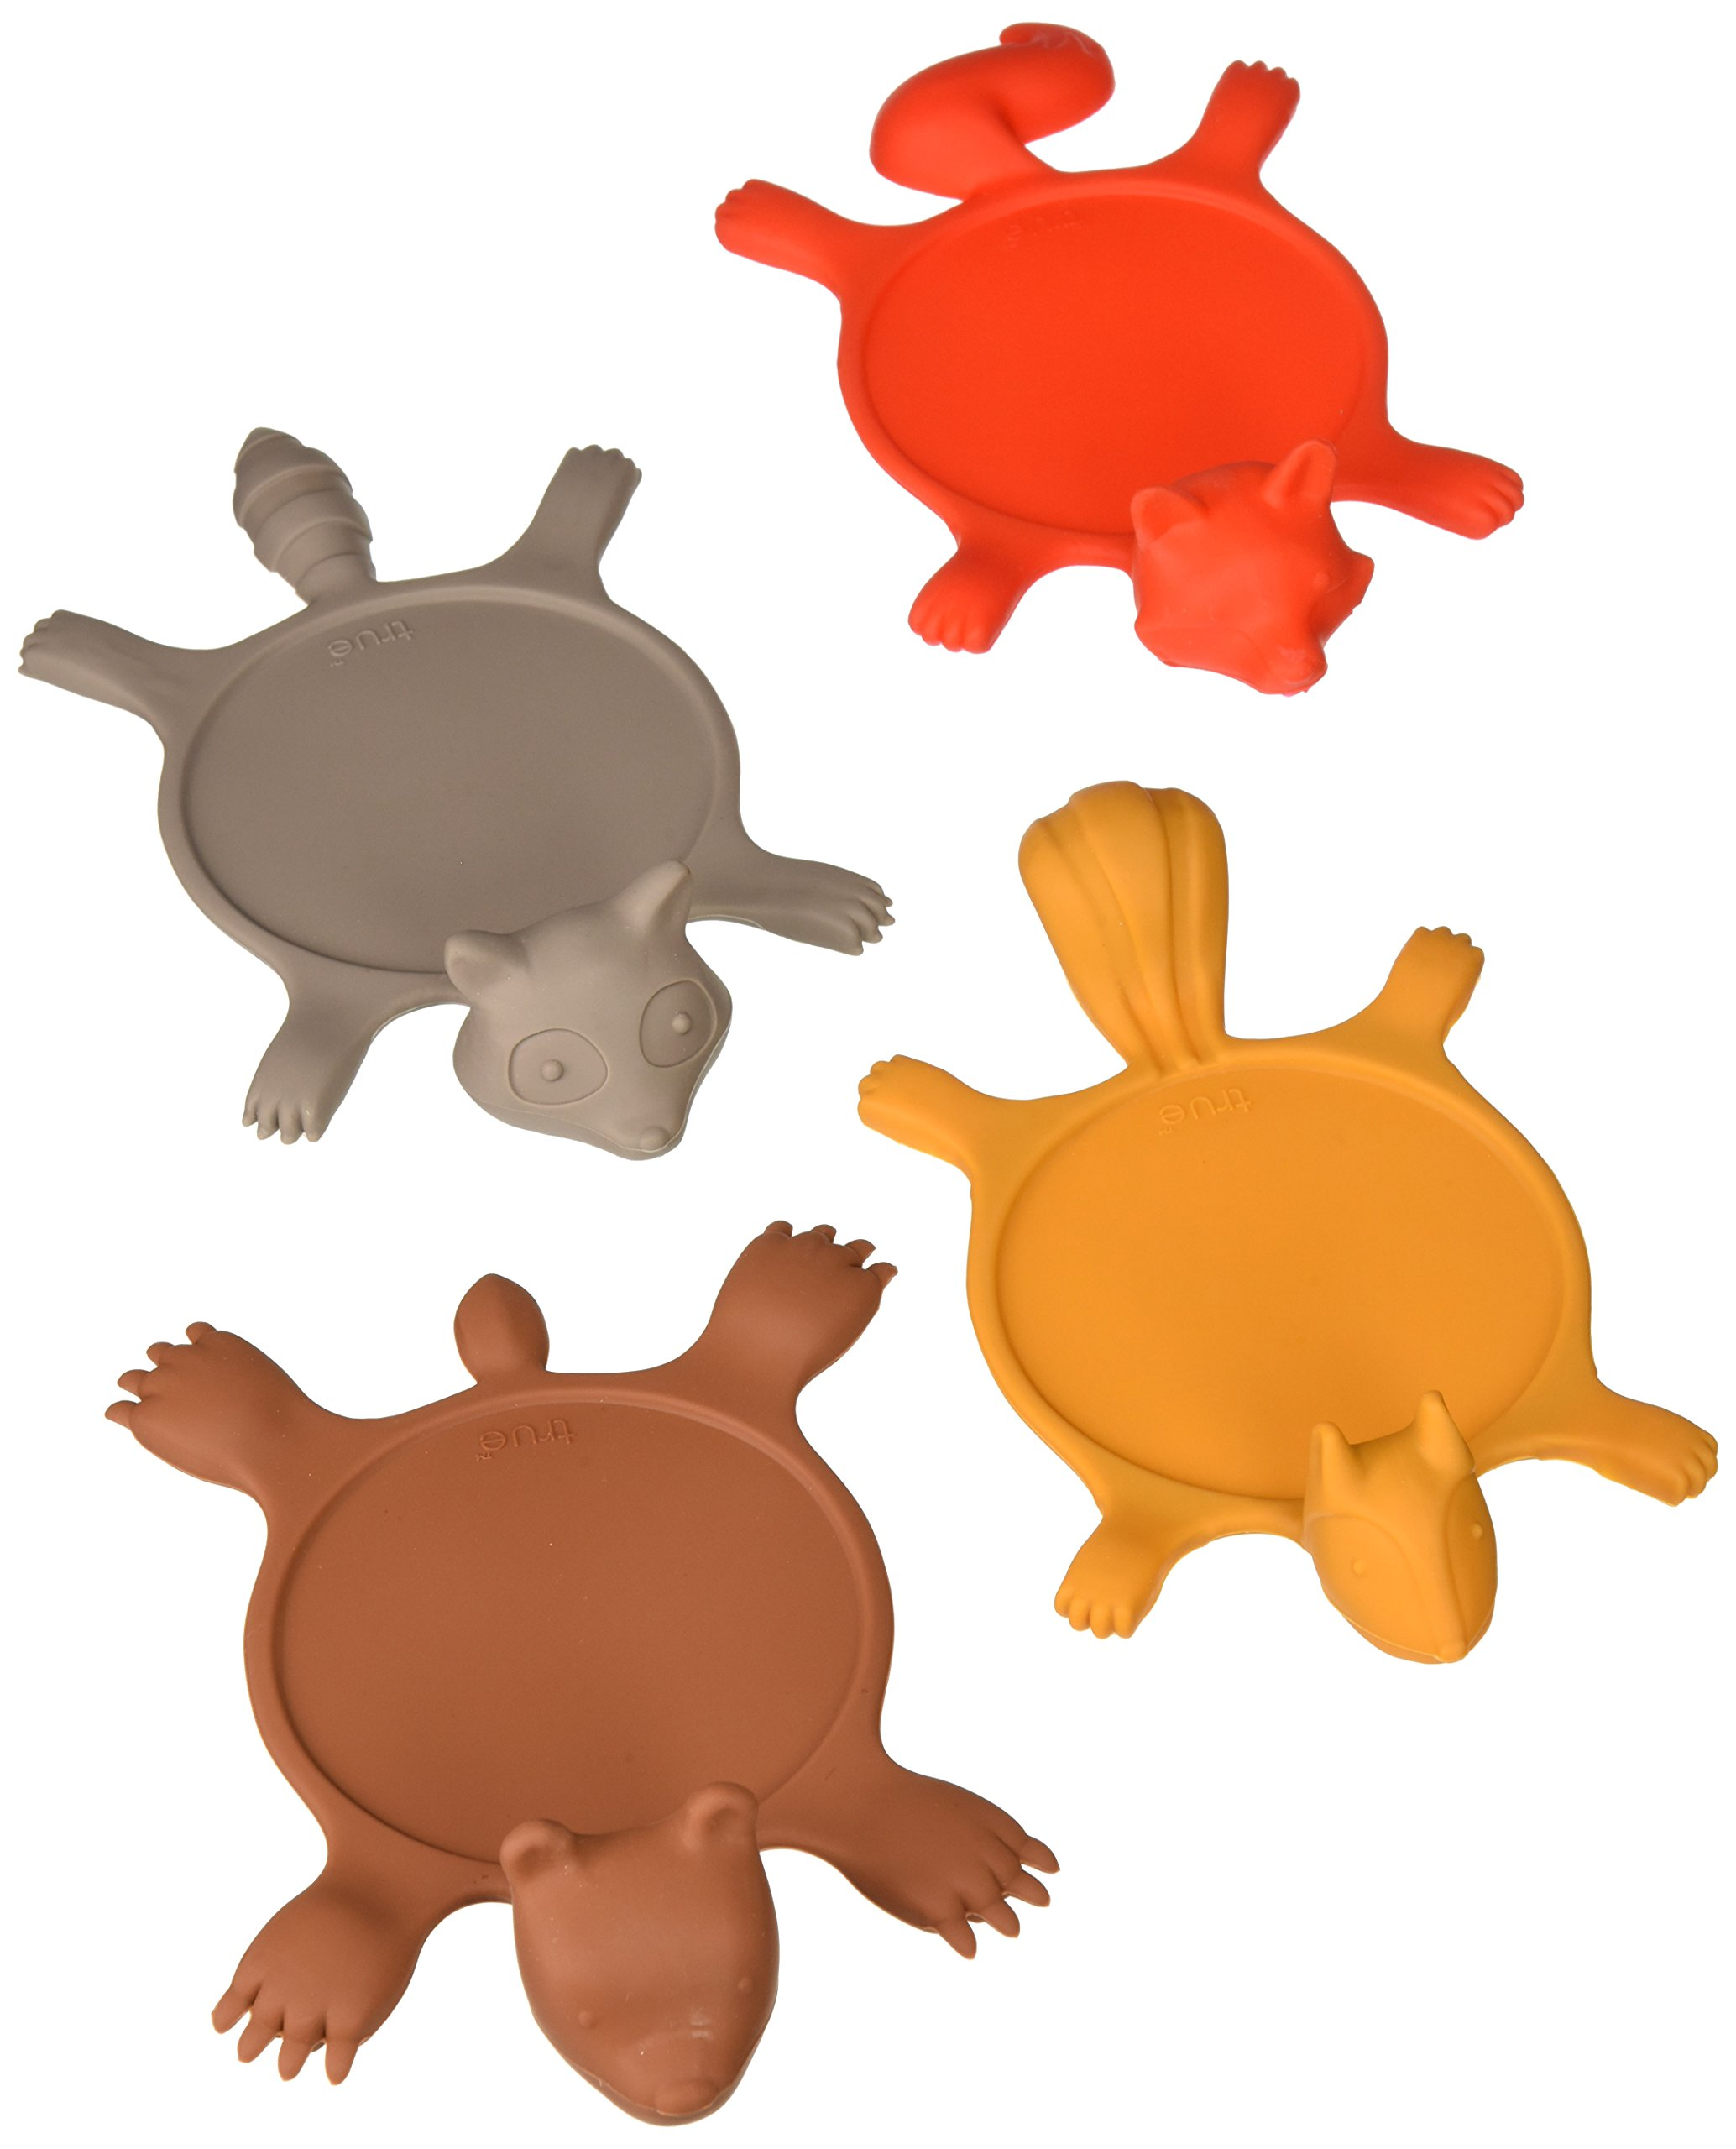 TrueZoo Get Smashed Silicone Animal Coasters (Set of 4) by